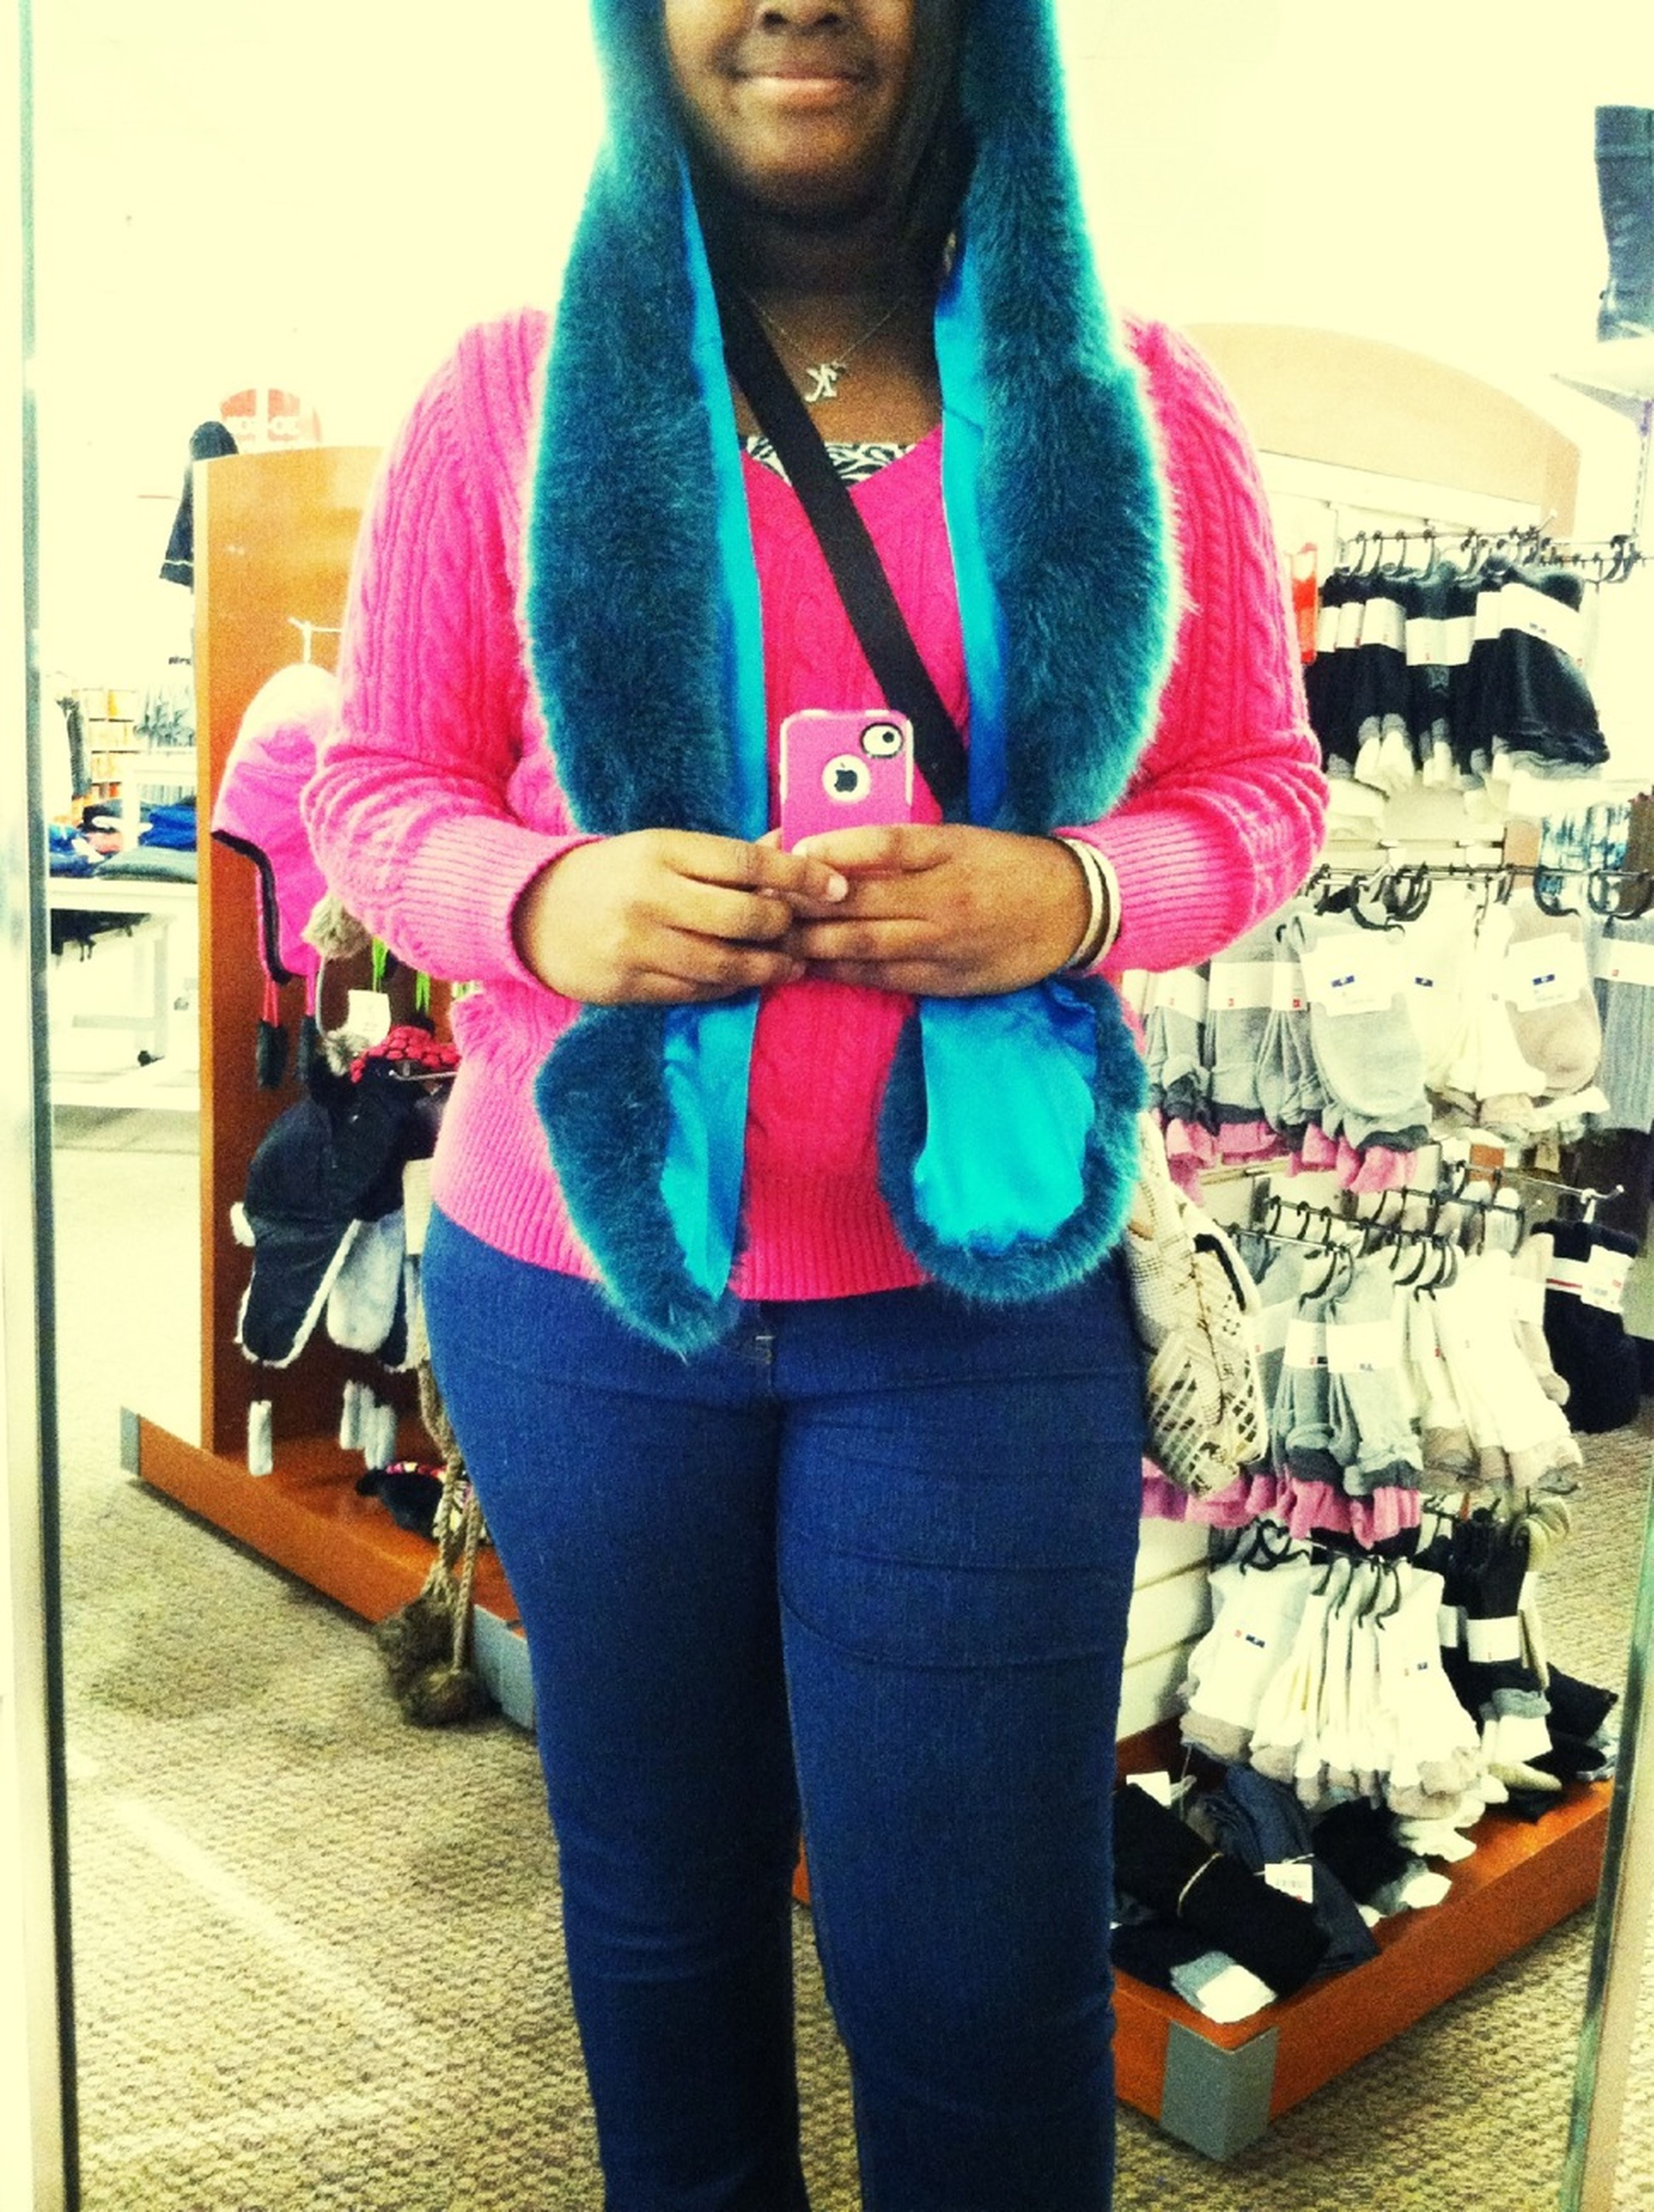 Chilling in the mall ! ☺